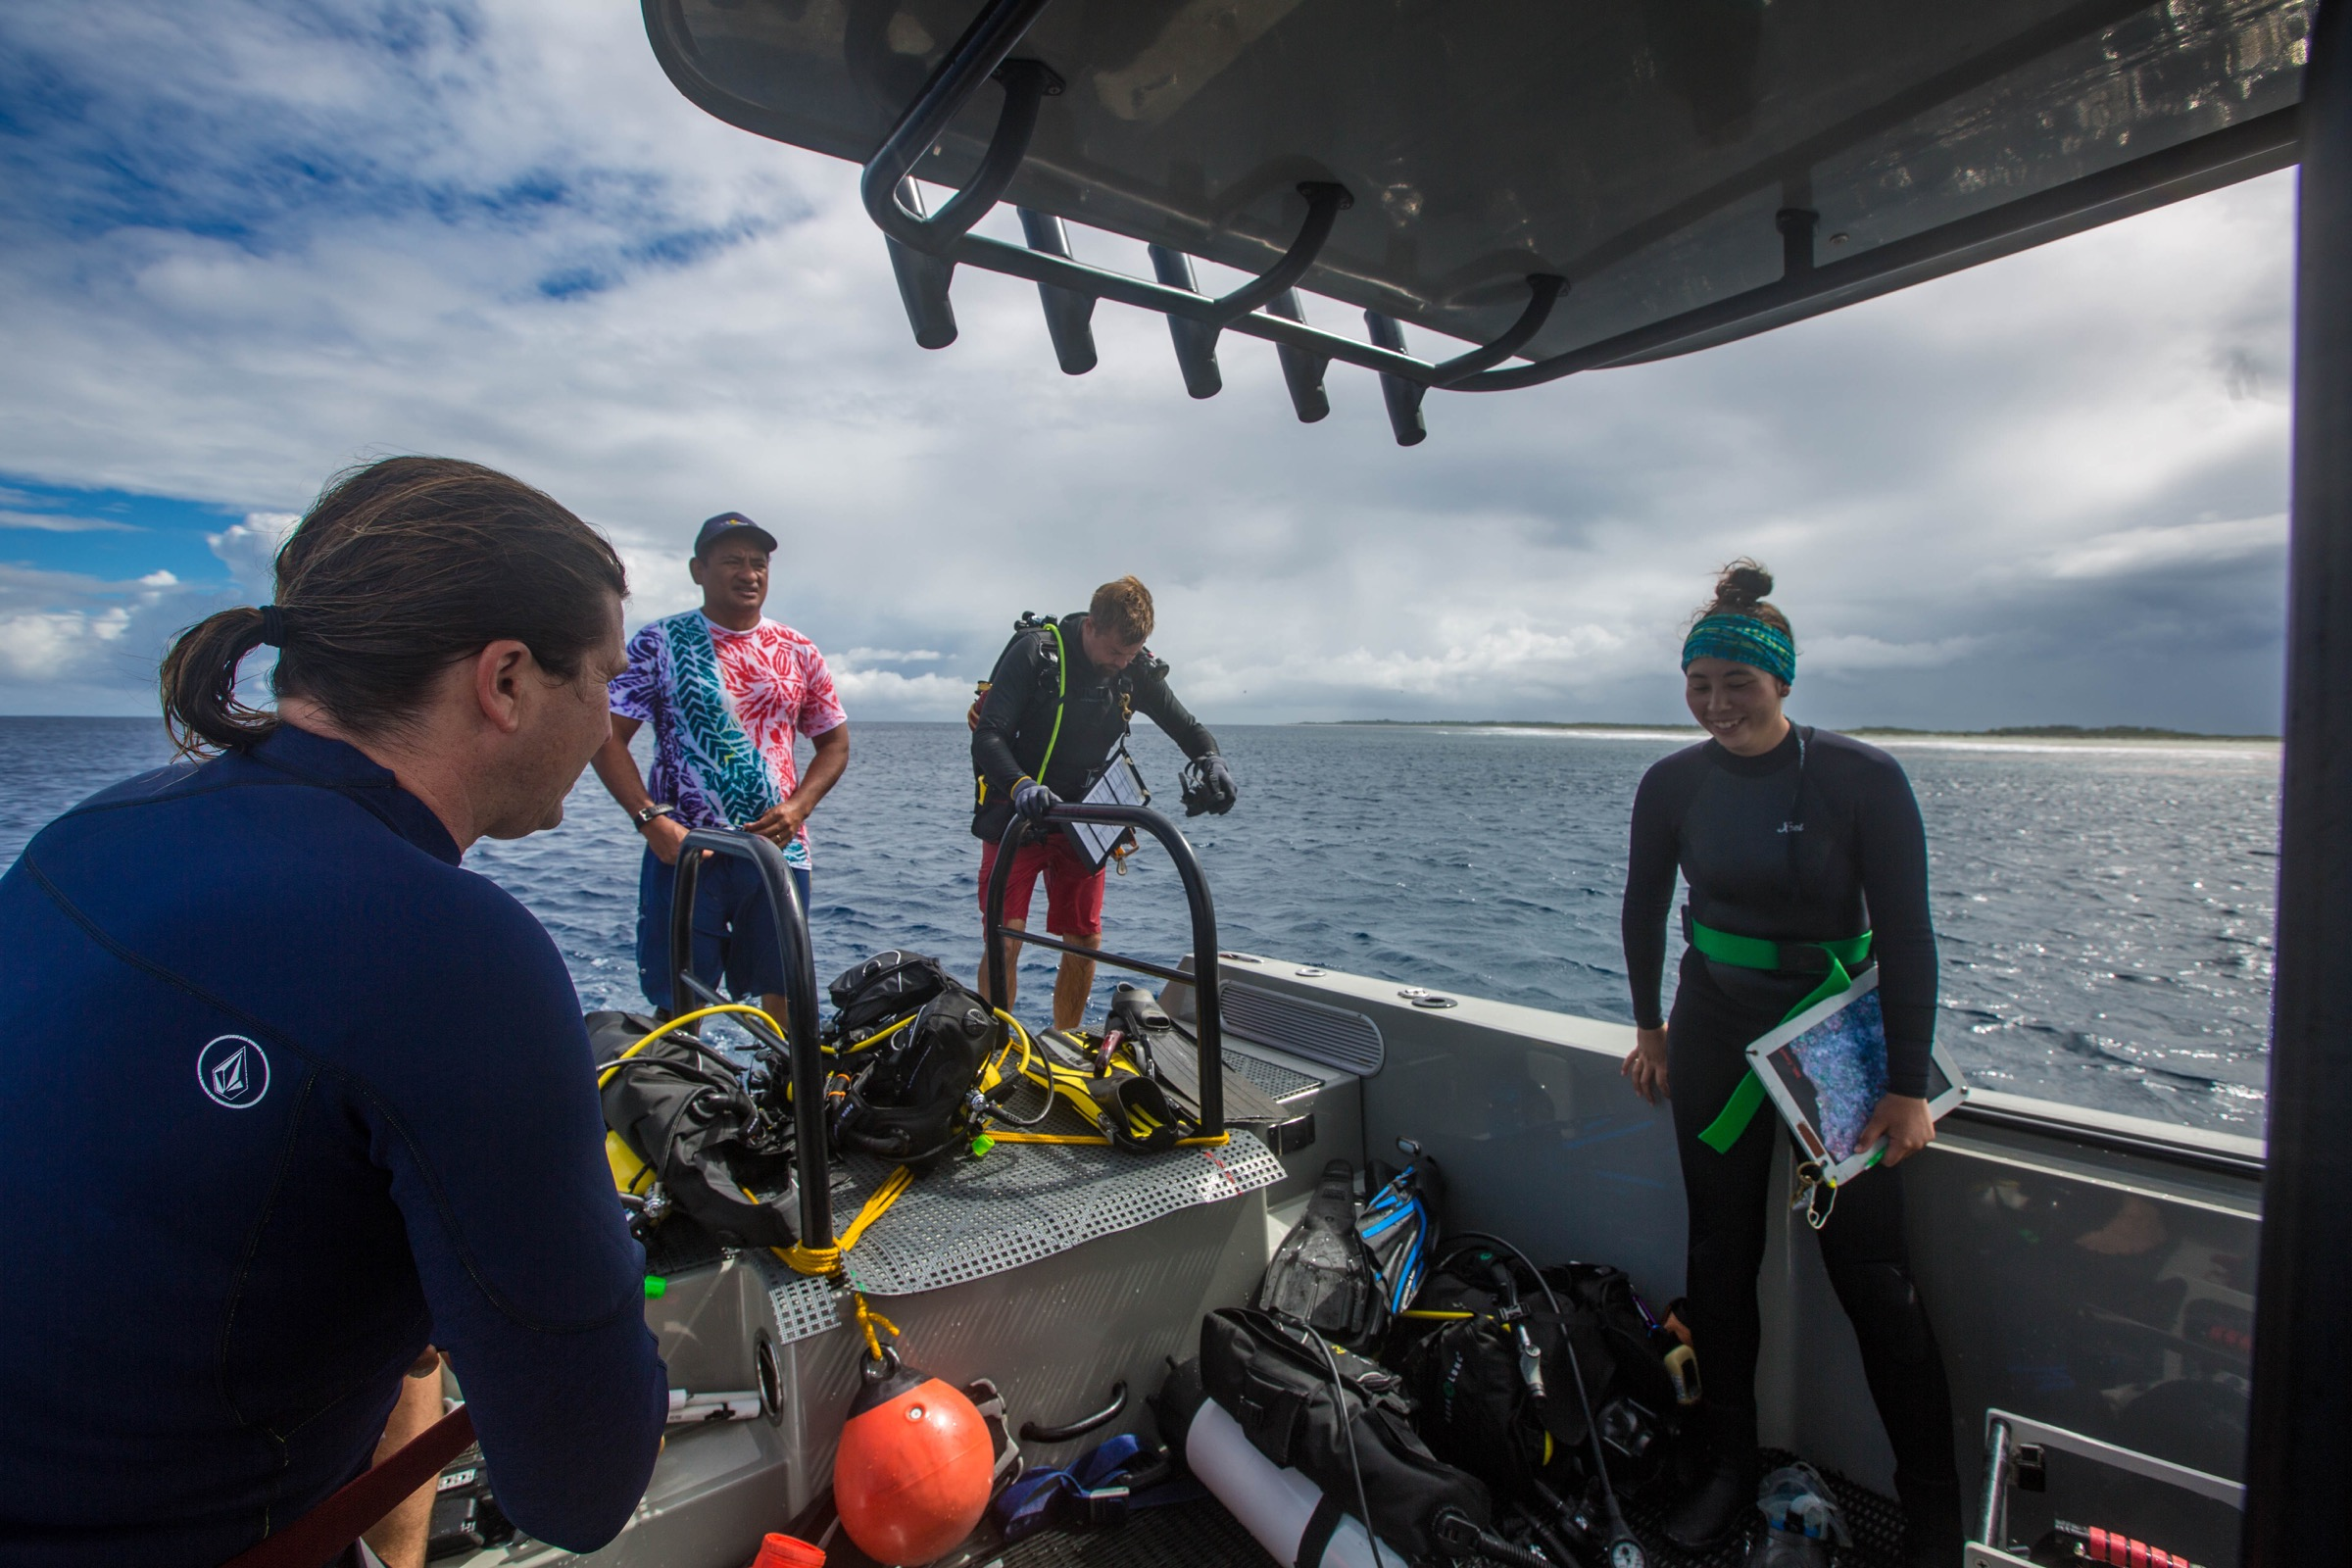 Stuart Sandin, Teina Rongo, Hank Lynch, and Nicole Pedersen prep for their next dive. Photograph by Shayna Brody